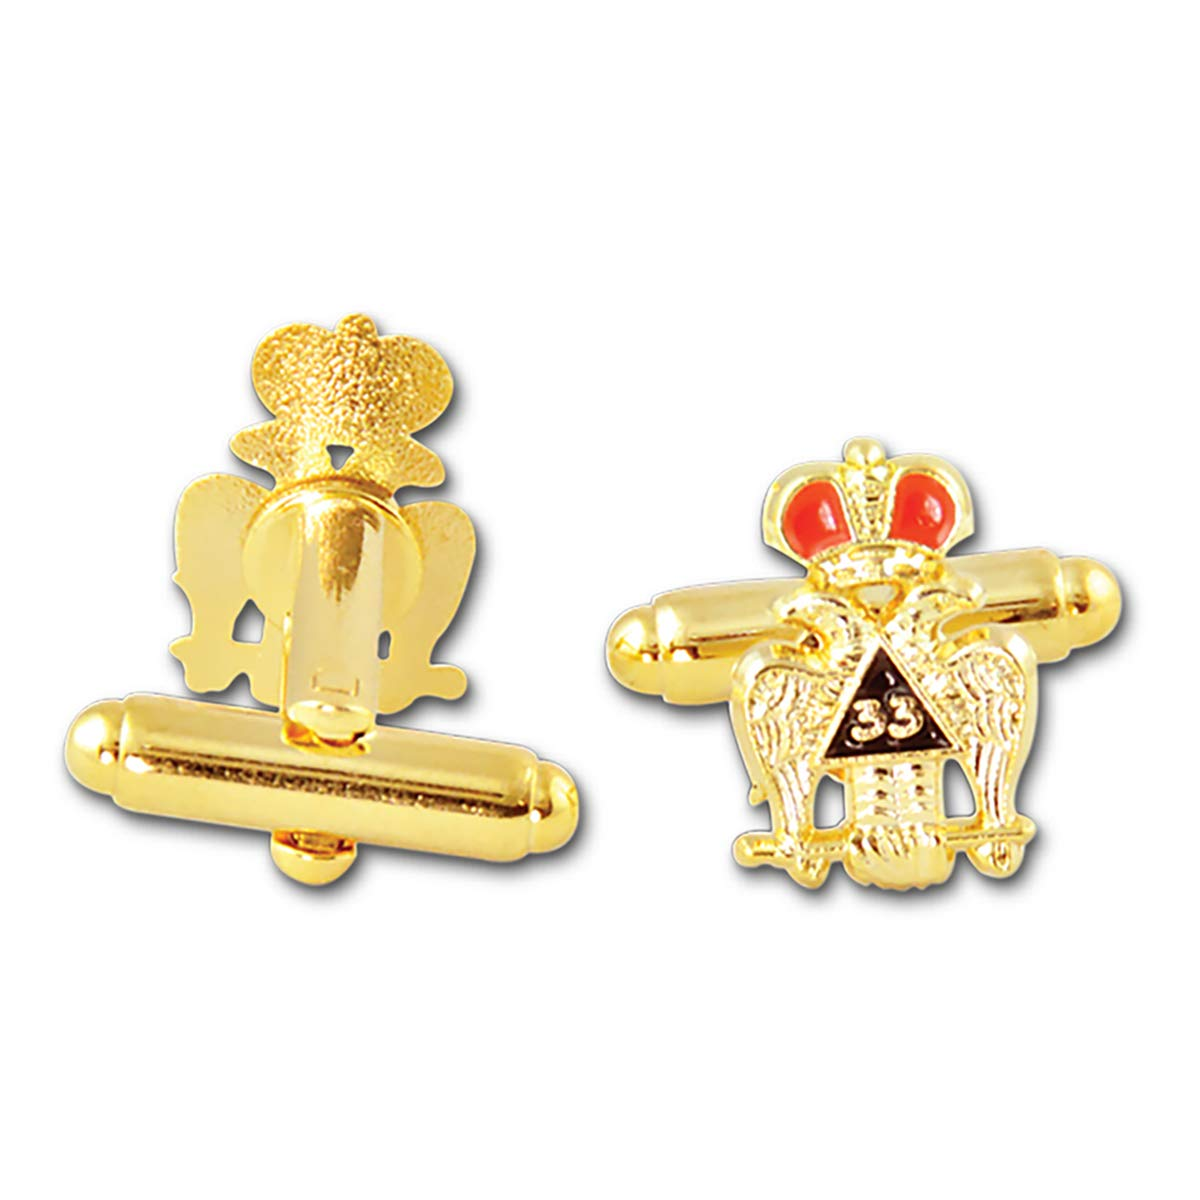 Masonic 33rd Degree Crowned Double Headed Eagle Gold Cufflink Set - 1/2'' Tall